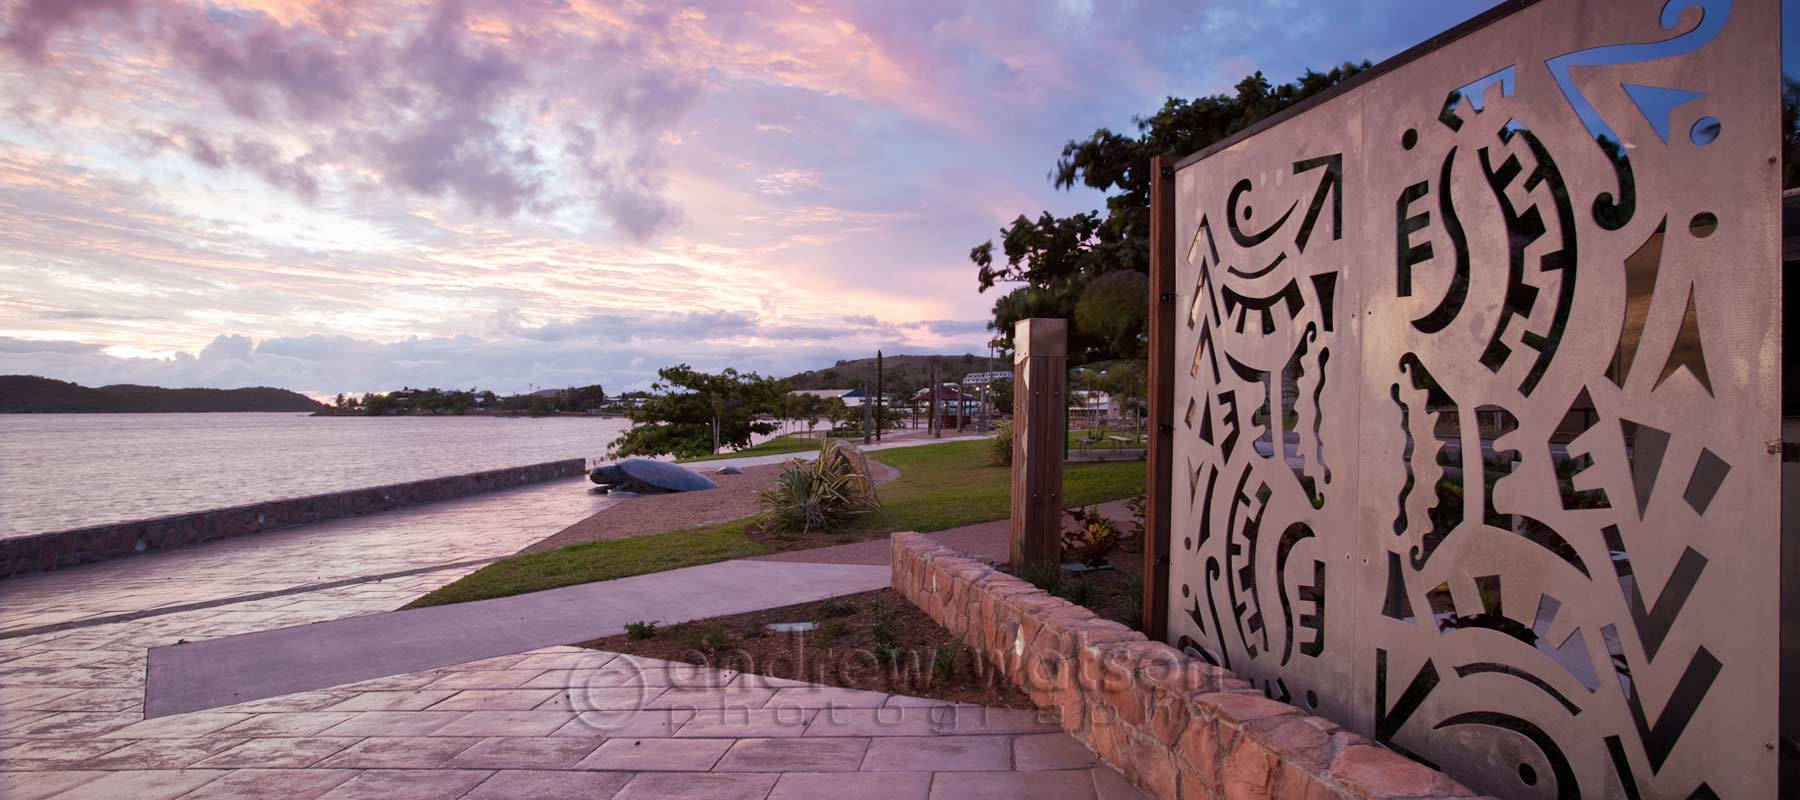 Landscape architecture photography - Esplanade foreshore on Thursday Island, Torres Strait